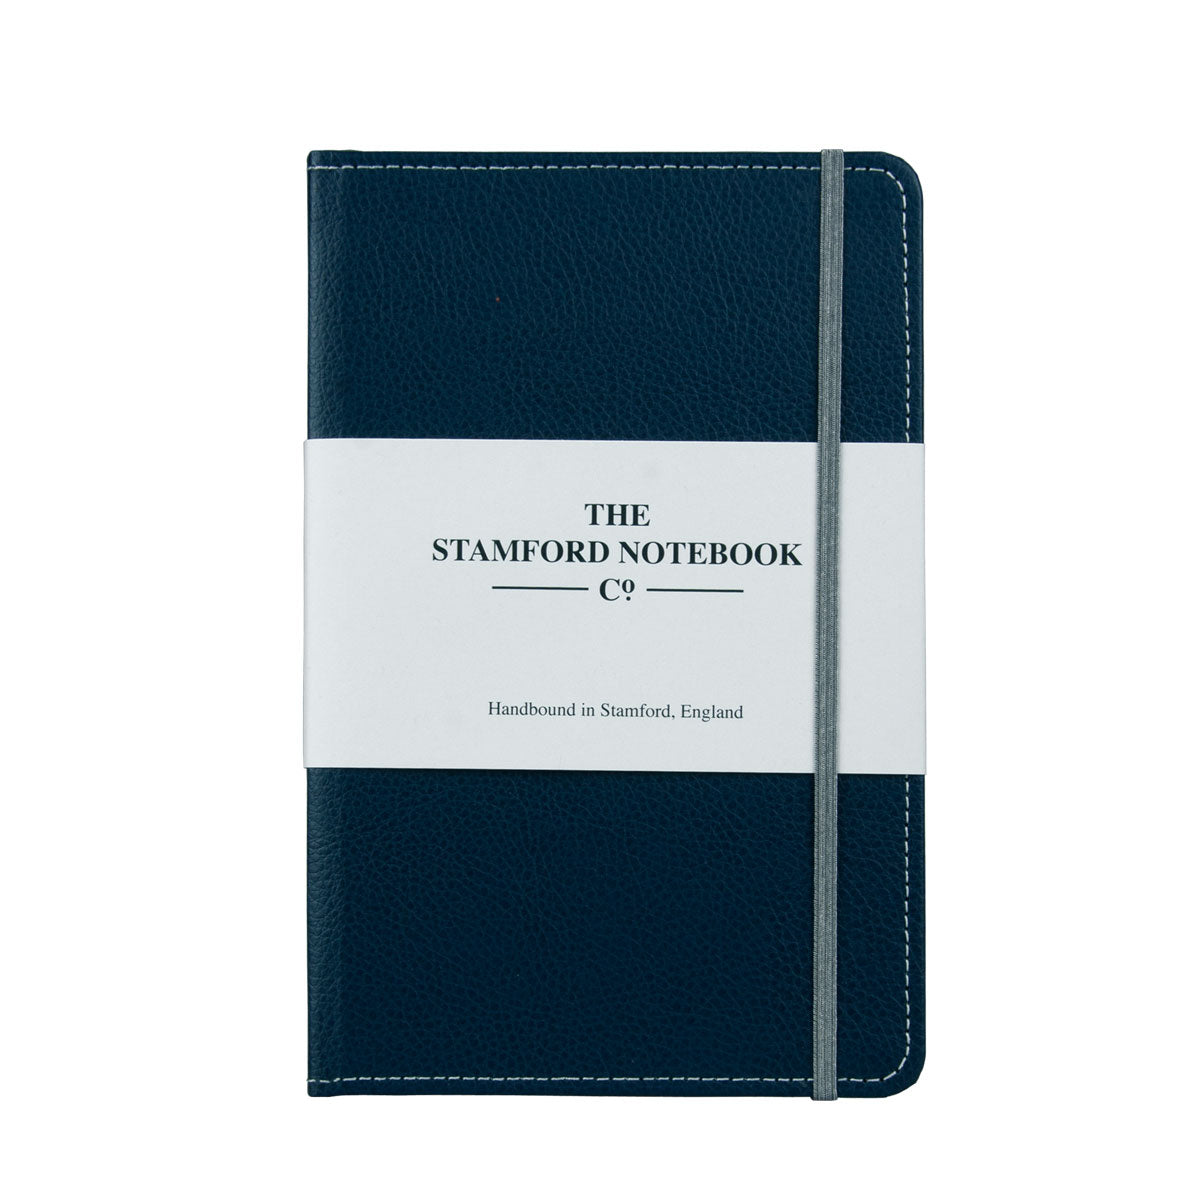 Marine Blue leather notebook with grey stitching